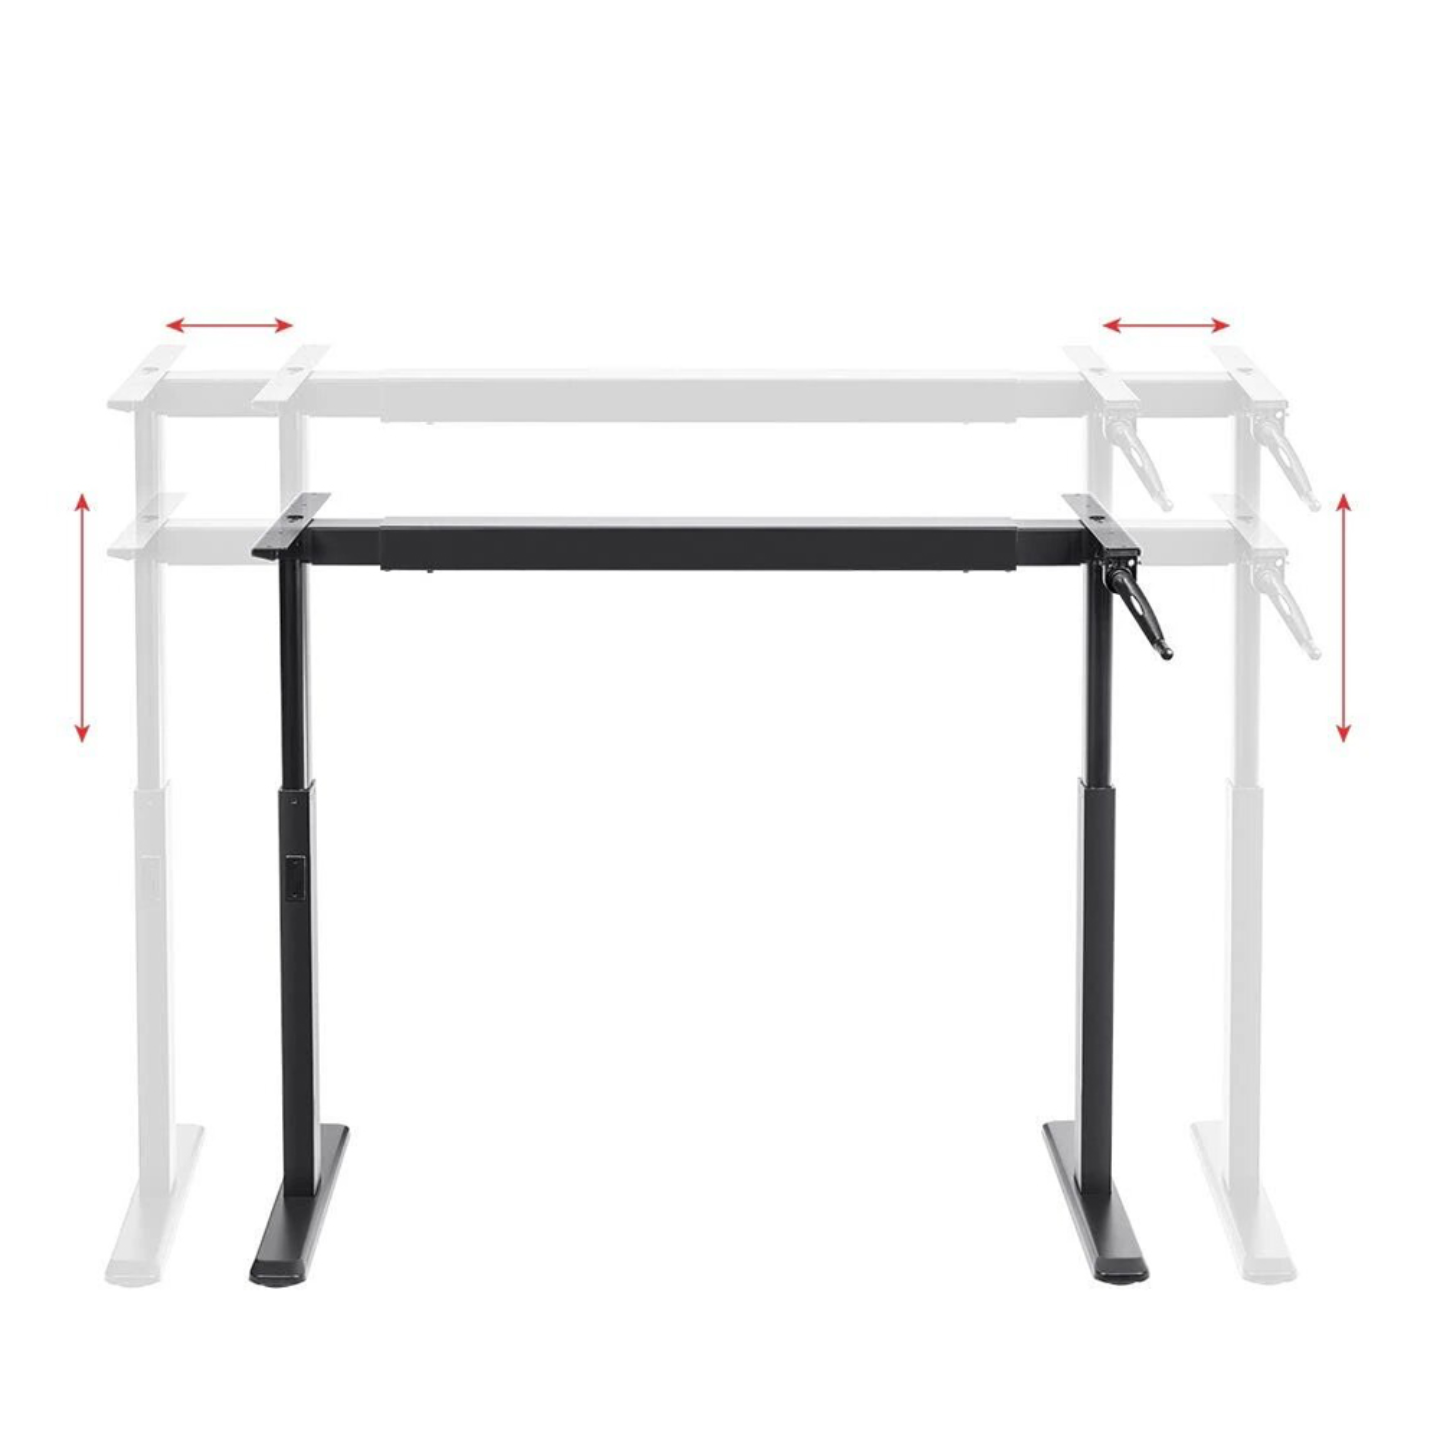 MANUAL WORKSTATION (Black Legs and White Top)